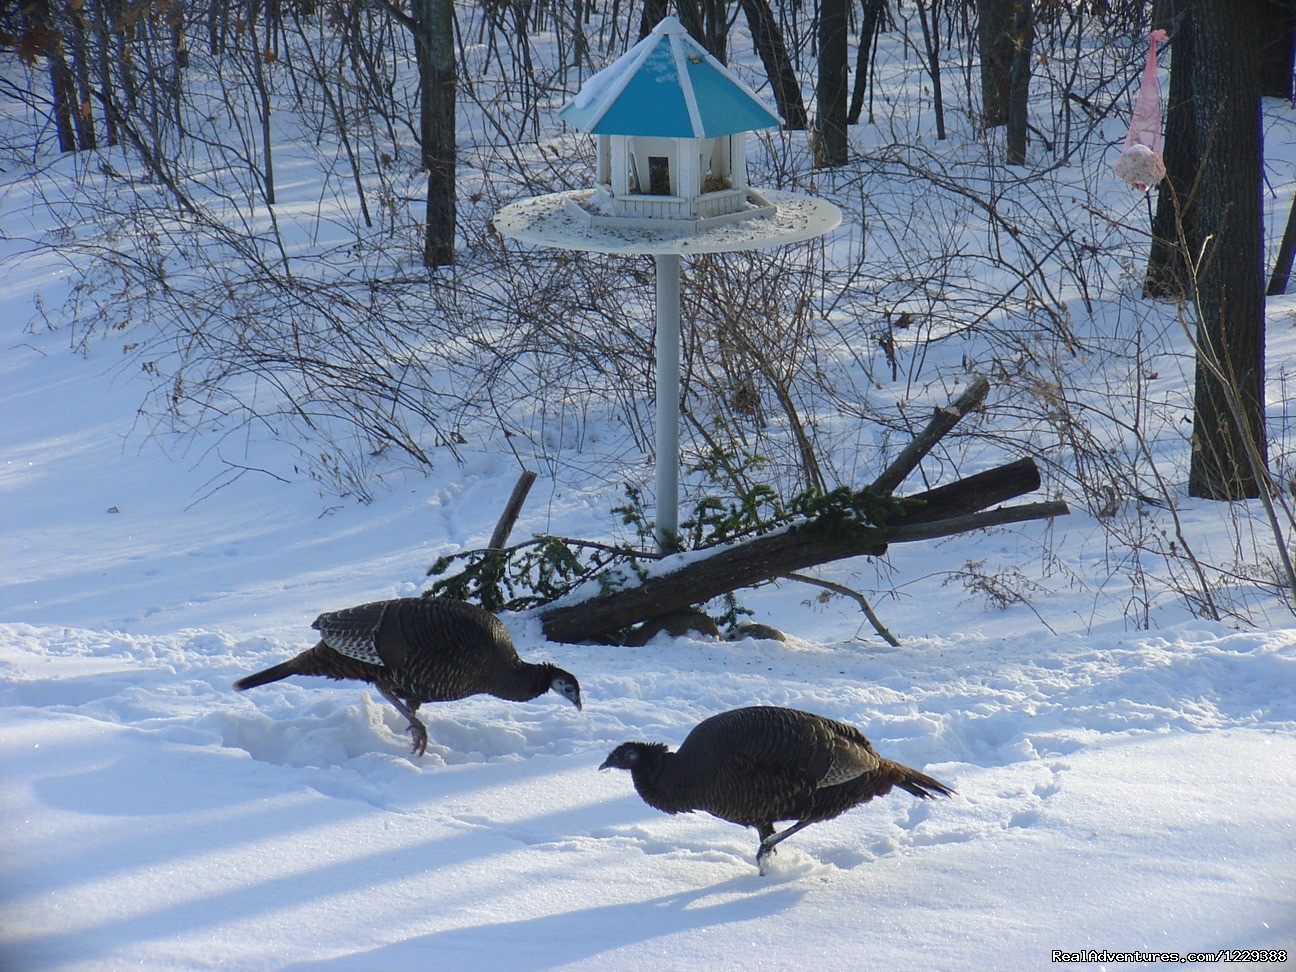 Turkeys at the Feeders | Image #10/20 | Inn at Wawanissee Point